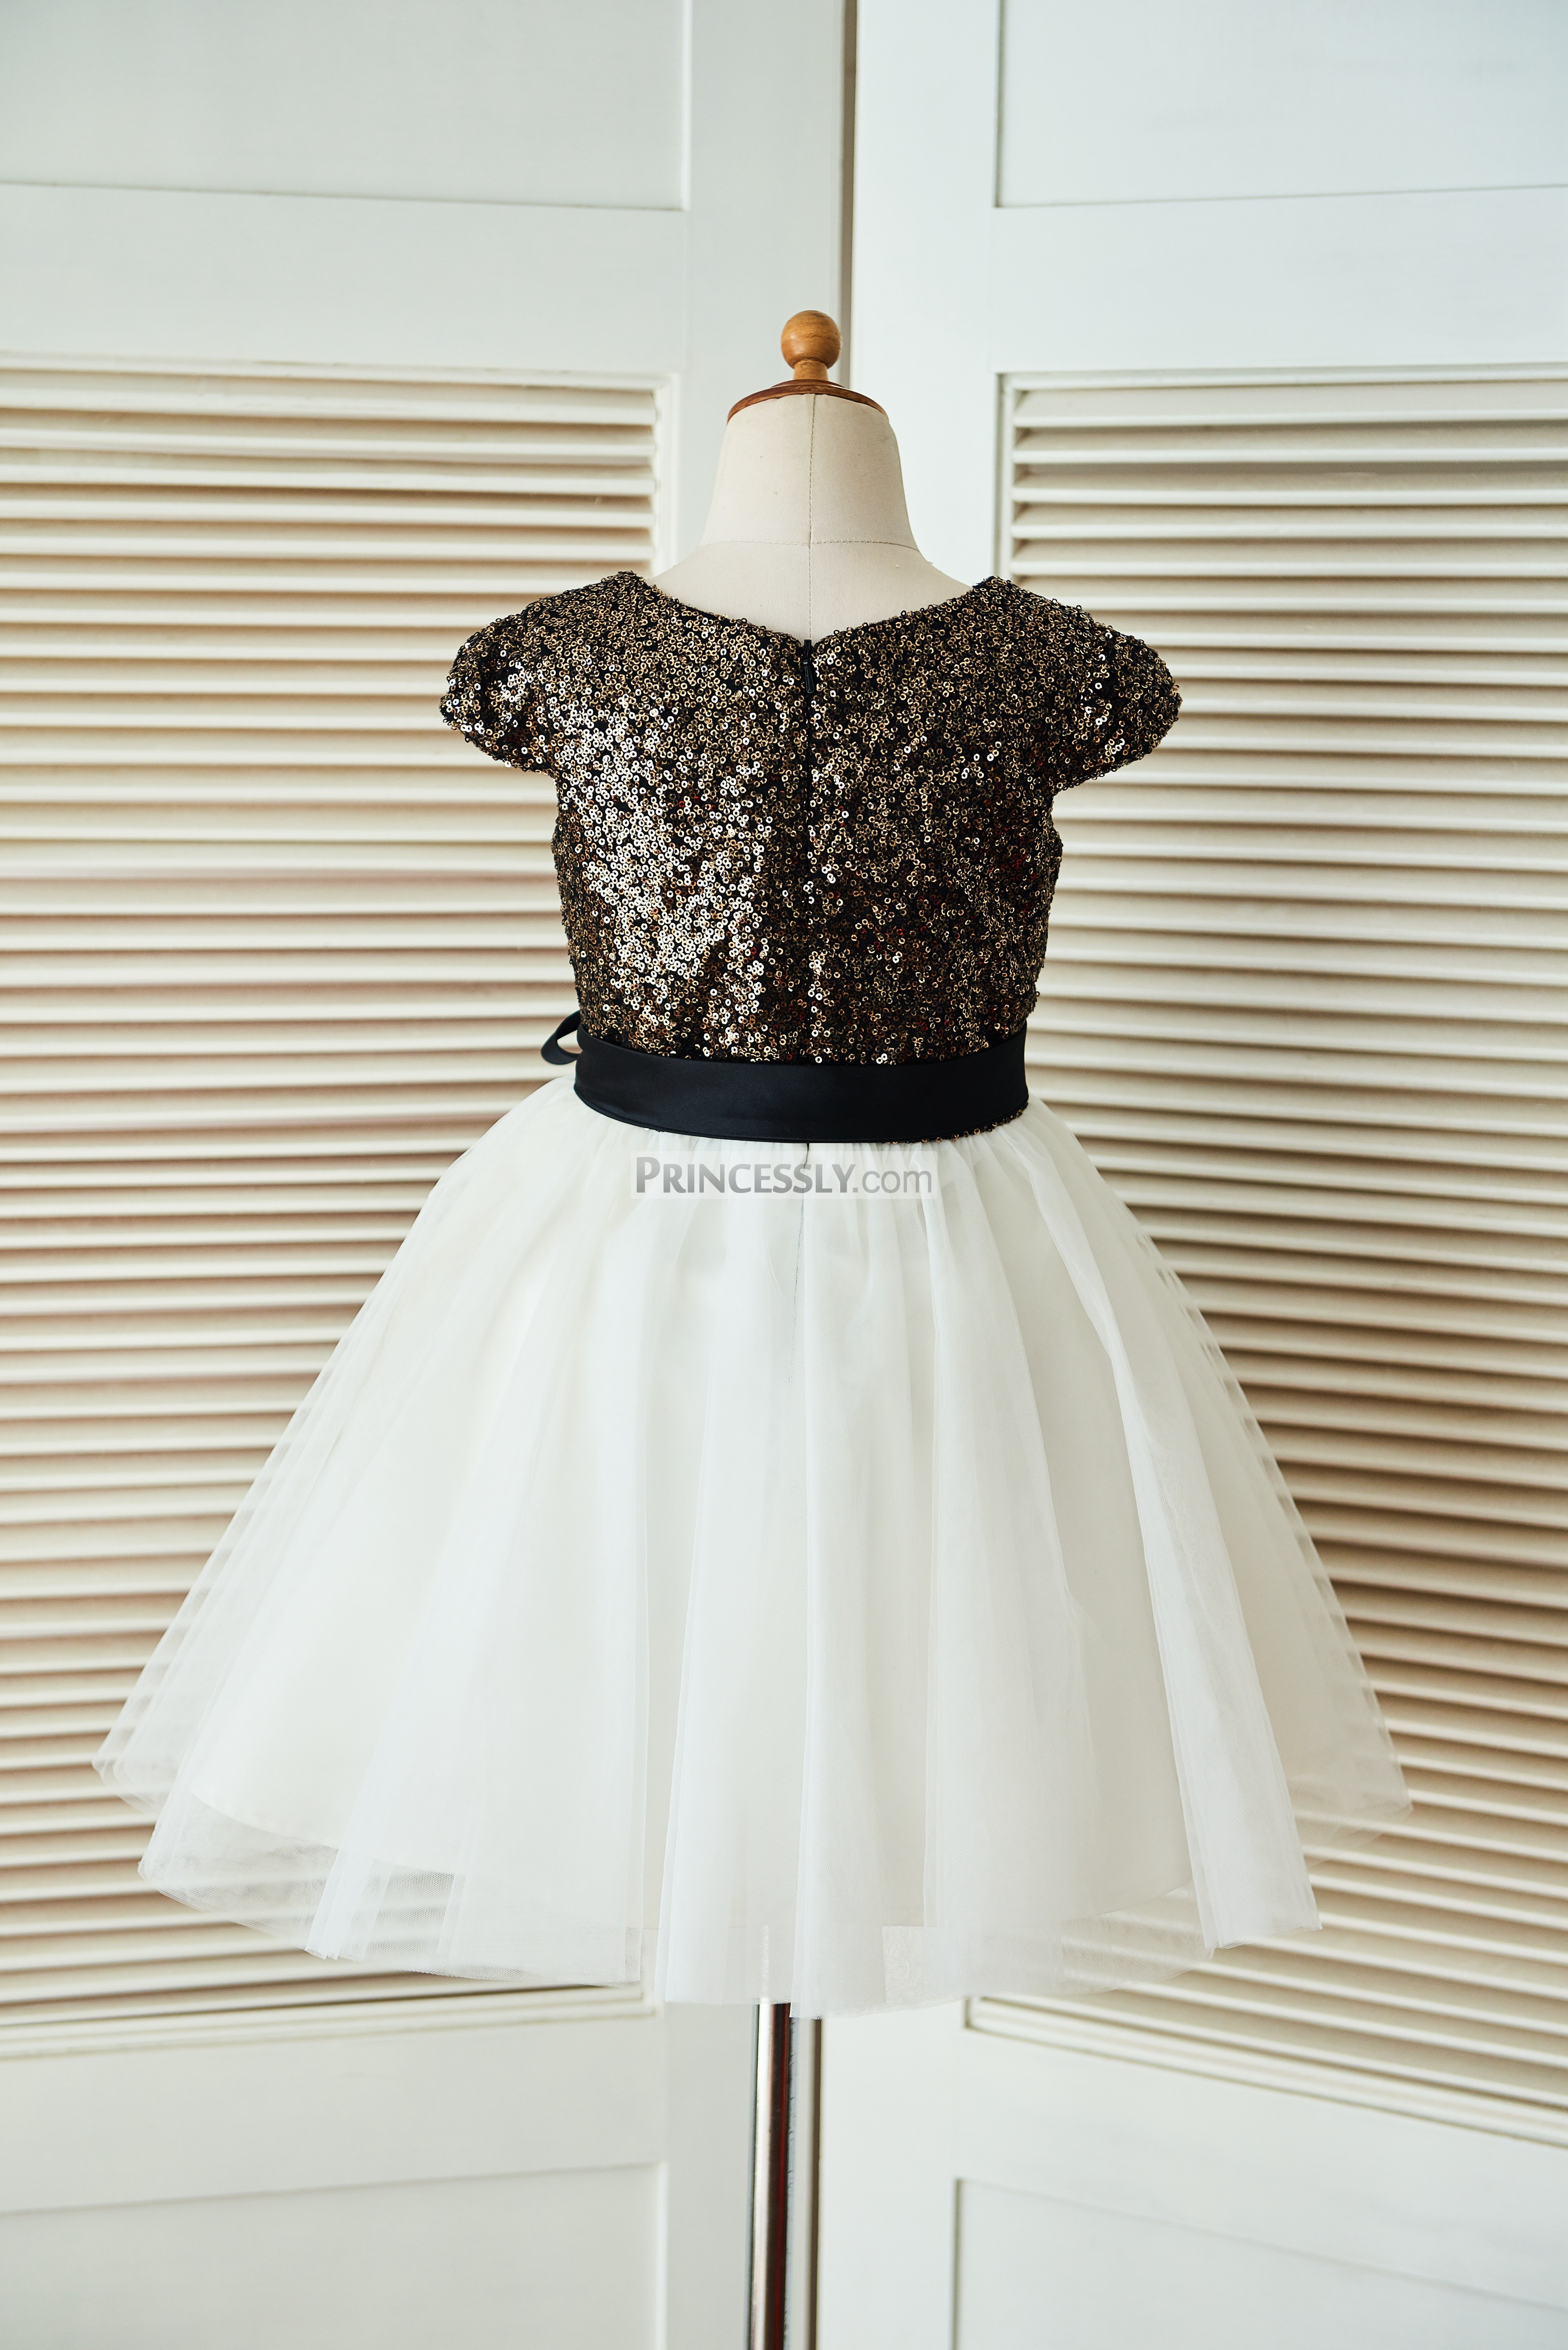 Gold sequin ivory tulle wedding baby girl dress with navy blue sash